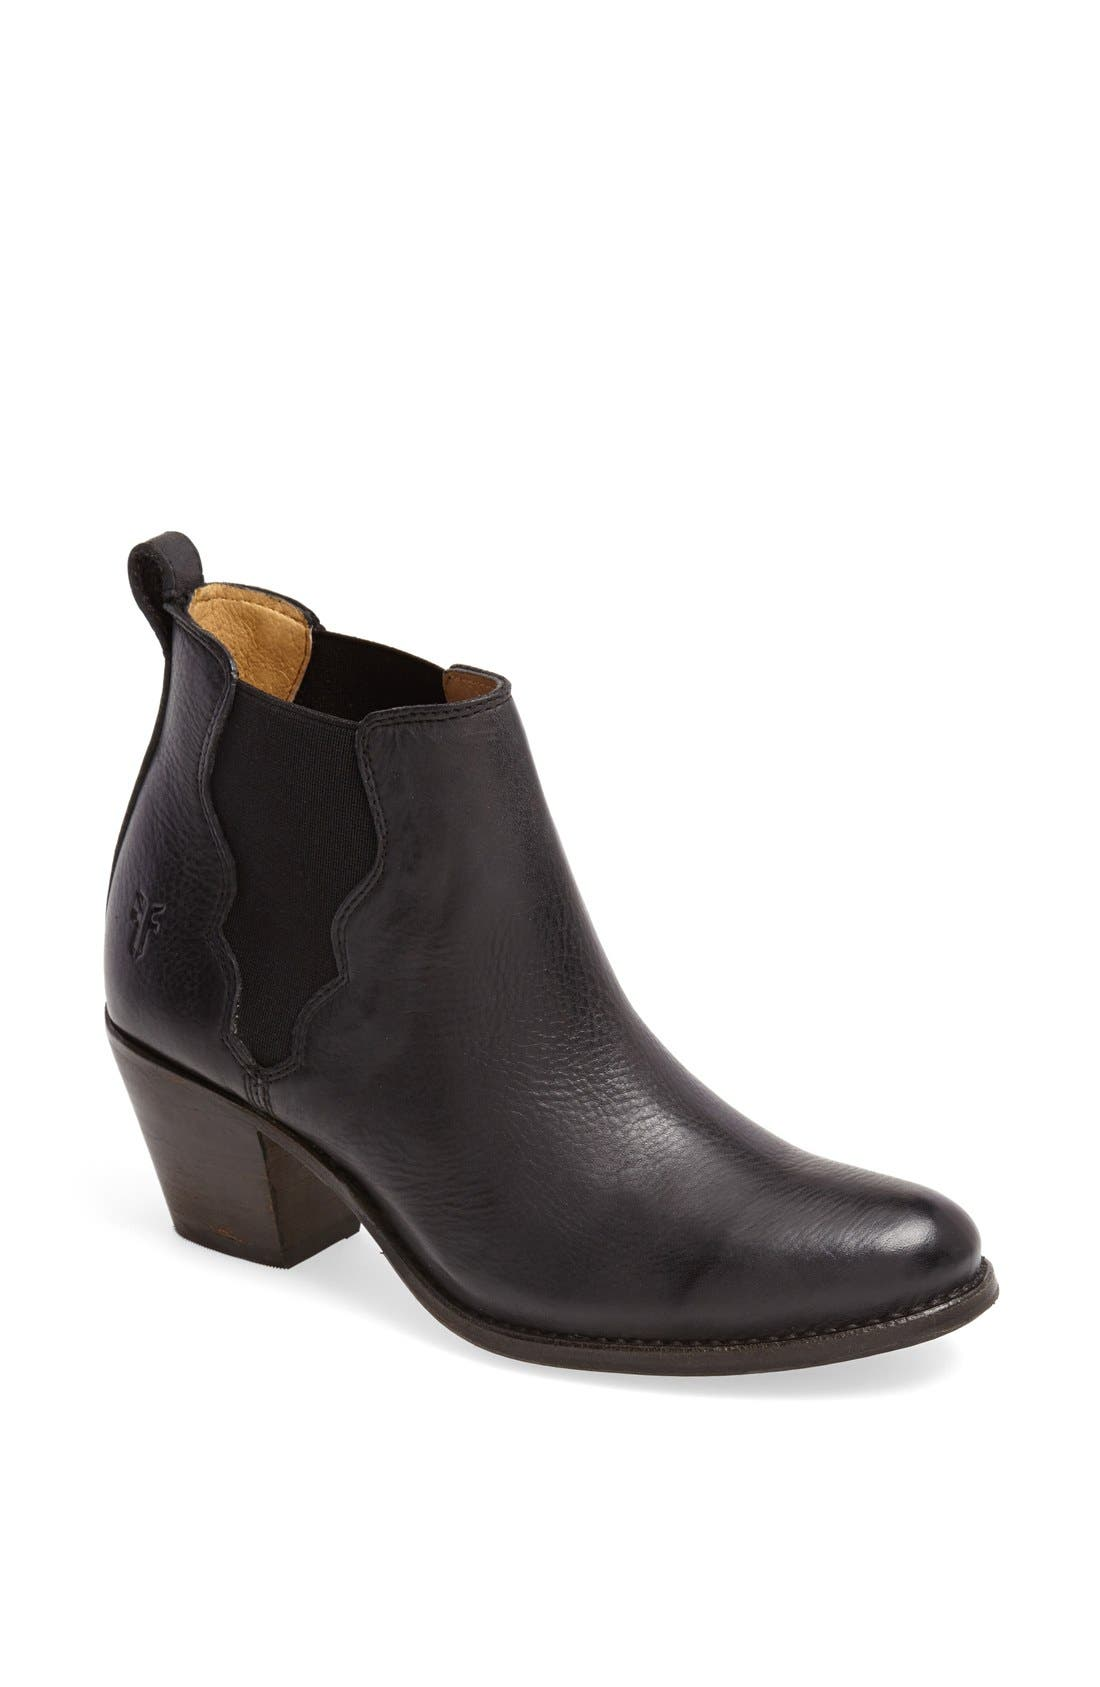 Main Image - Frye 'Jackie' Leather Ankle Boot (Women)